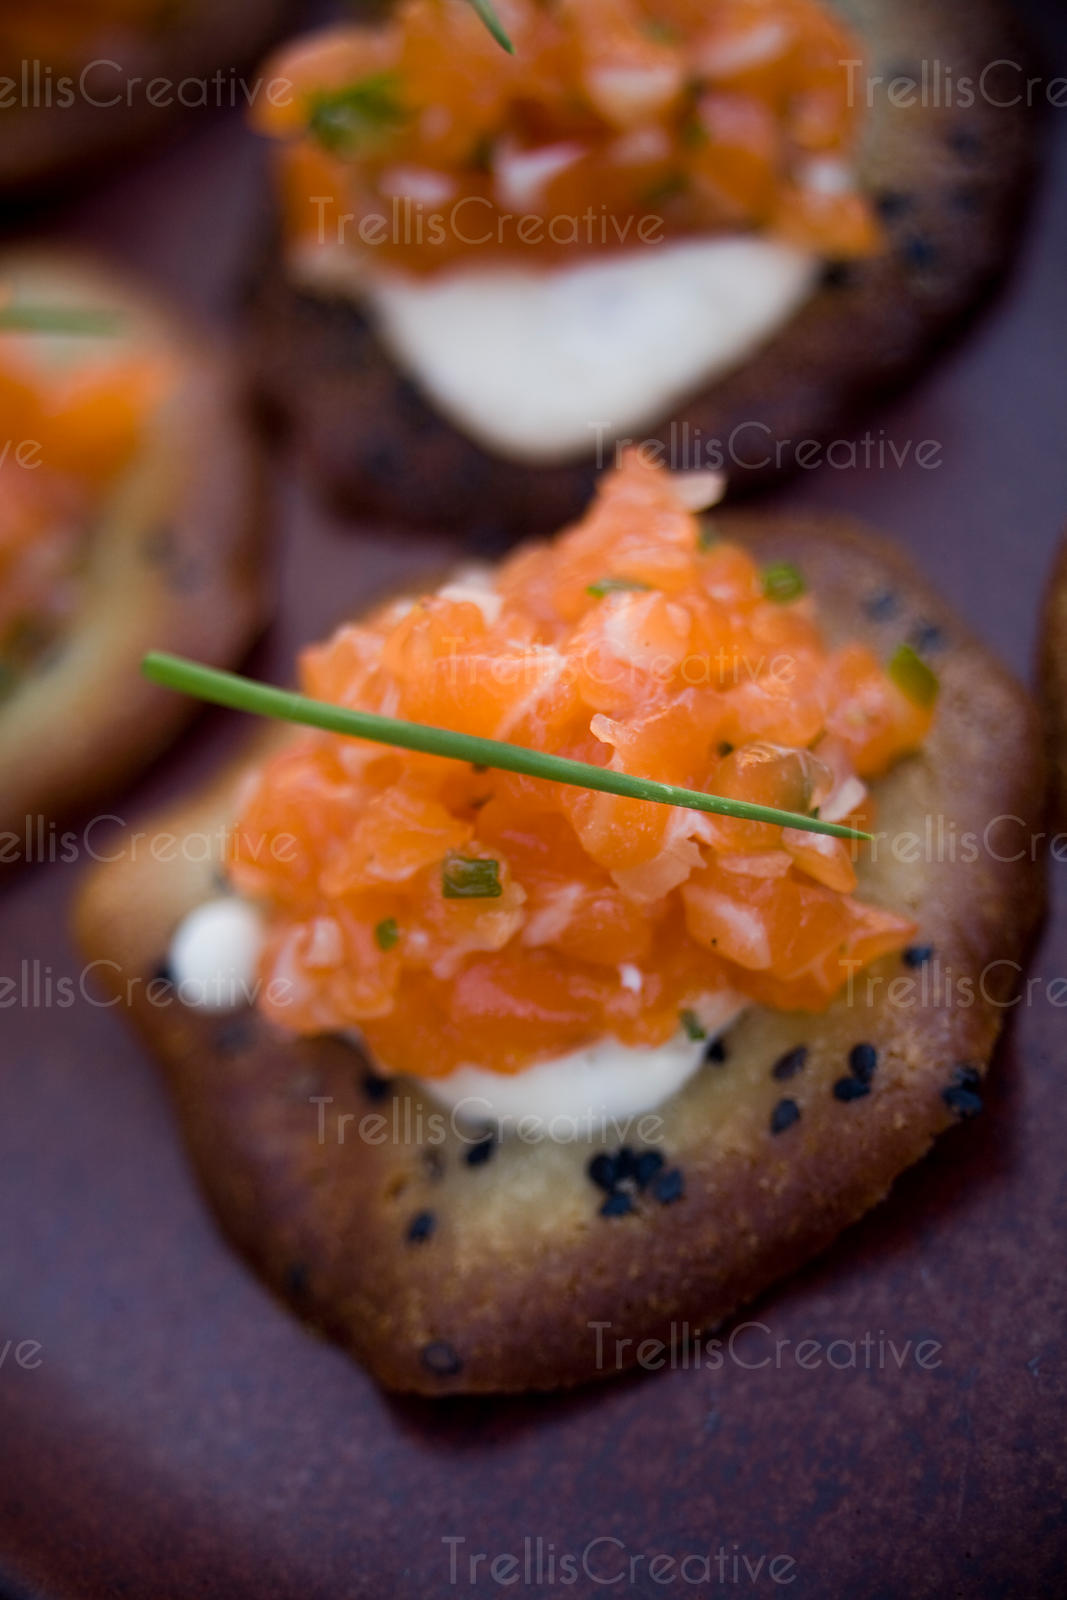 Salmon tartar on sesame crisps with creme fraiche served on stone platter